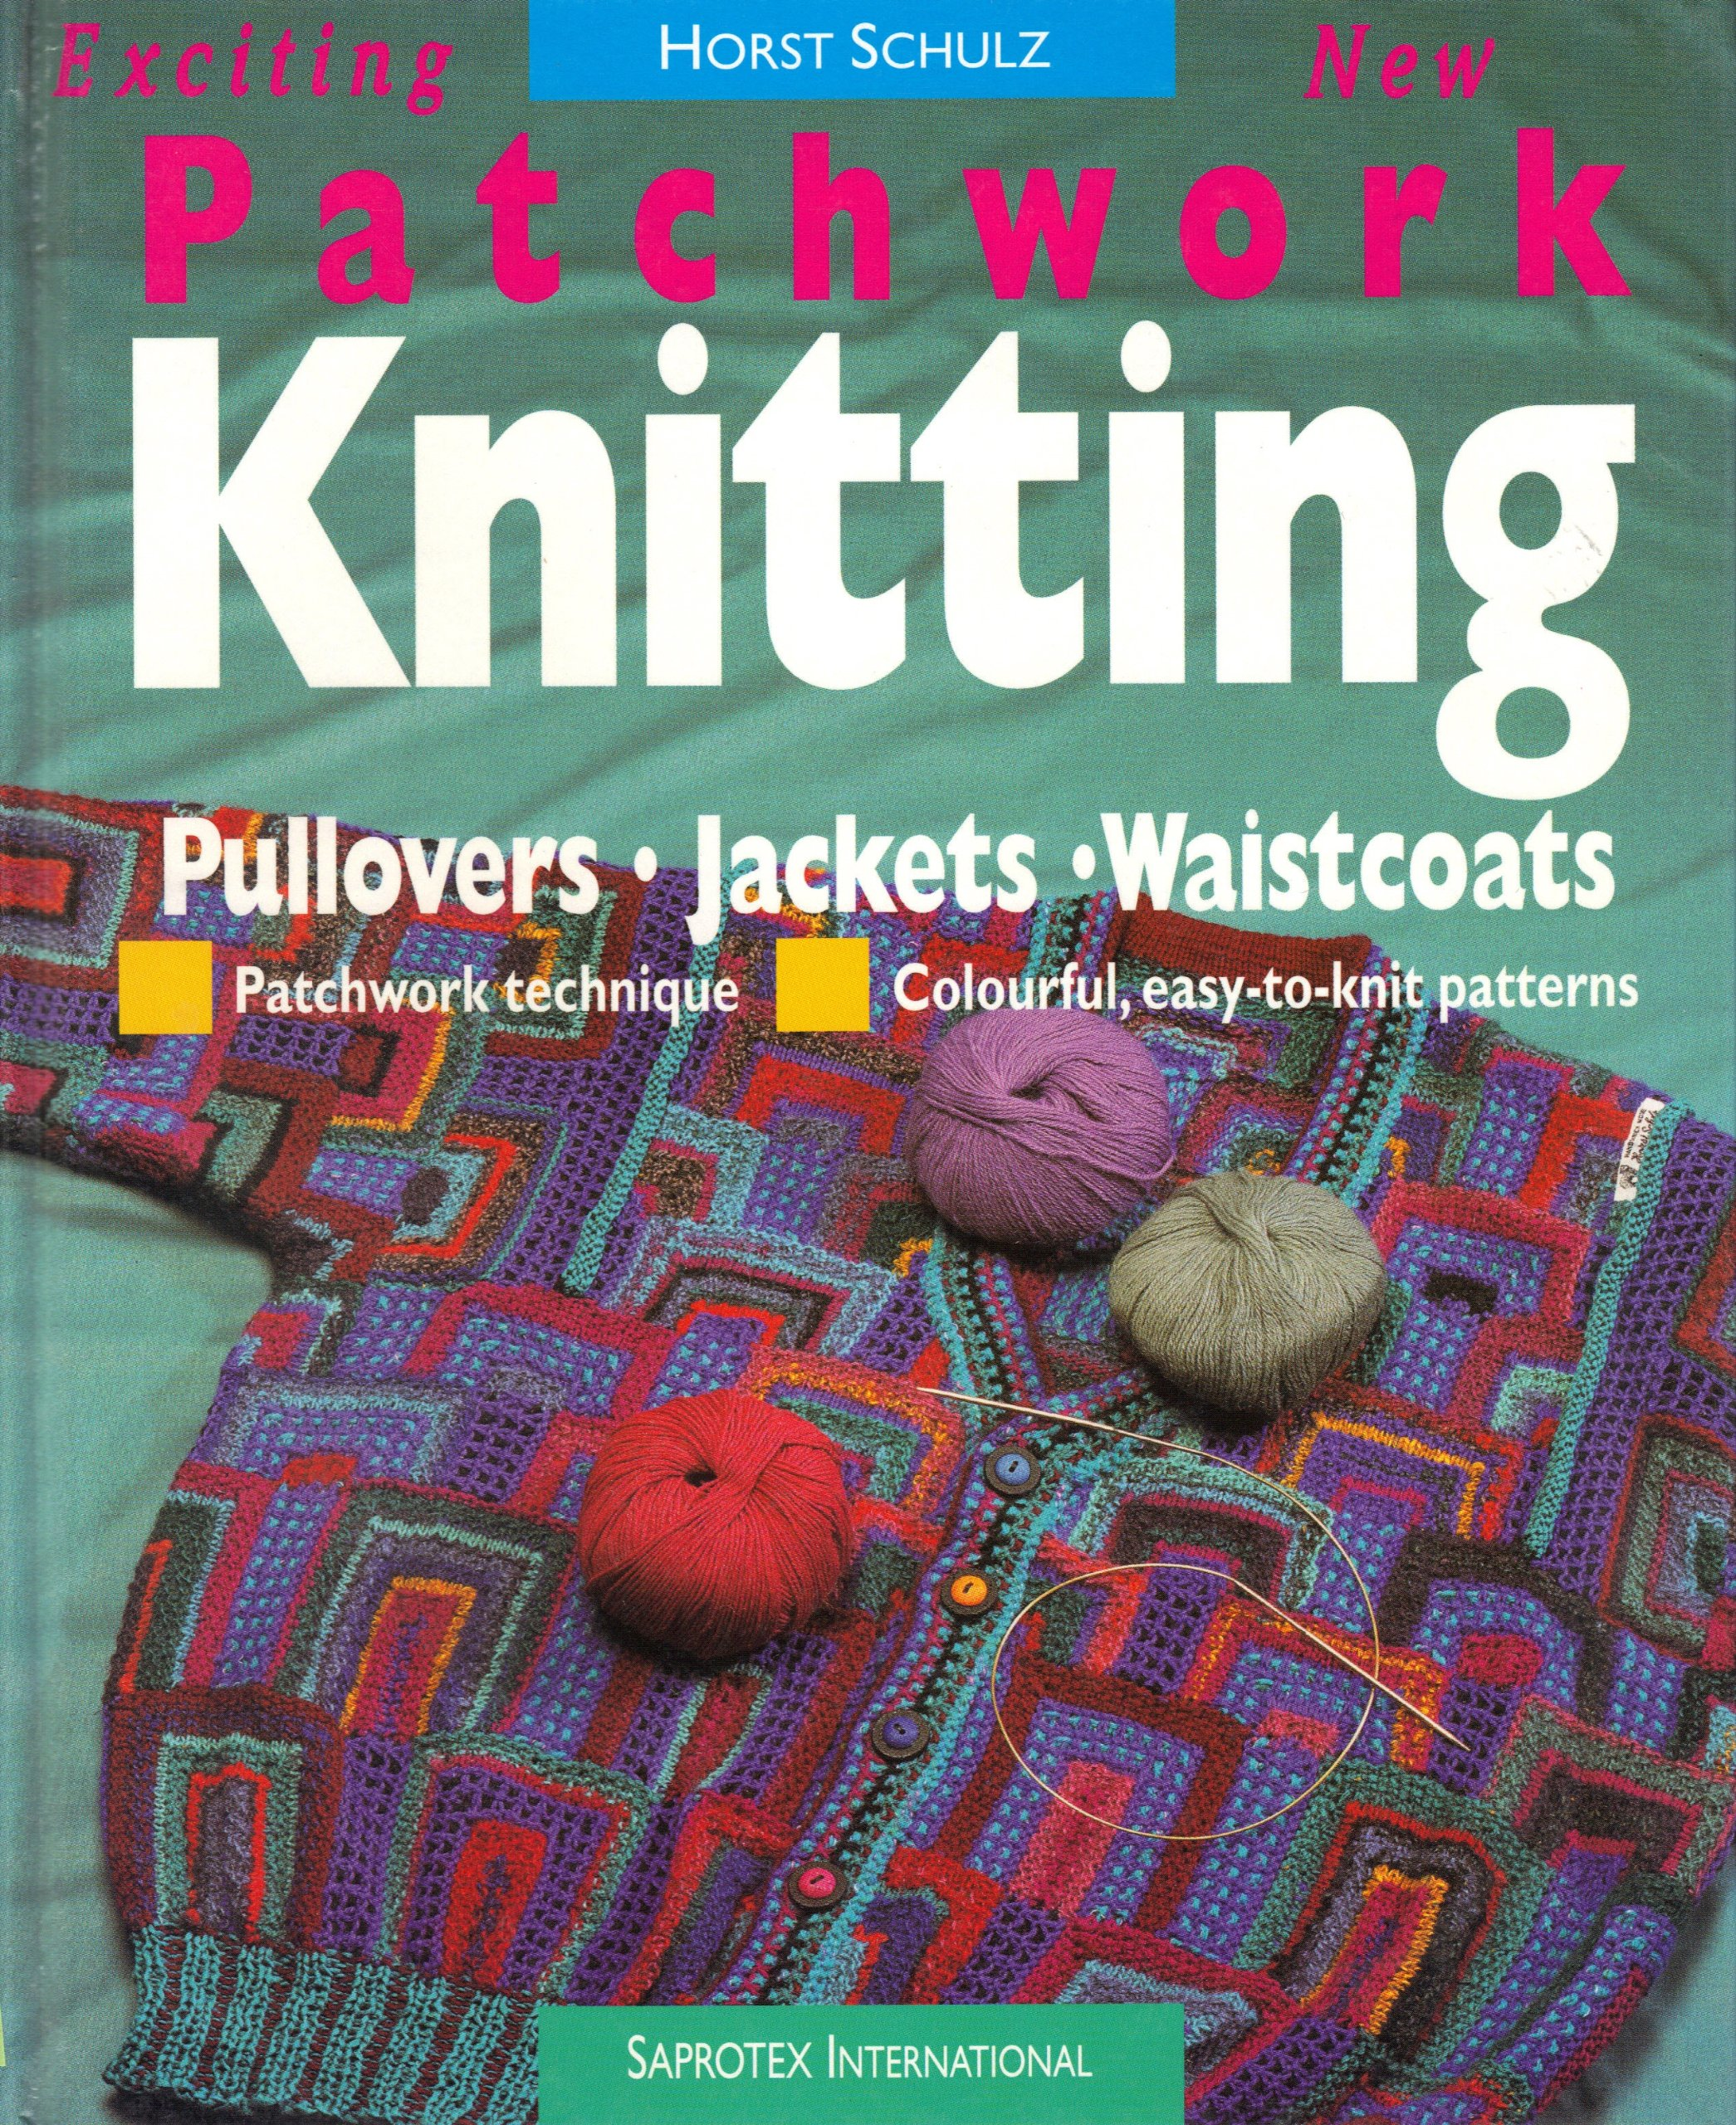 Patchwork Knitting